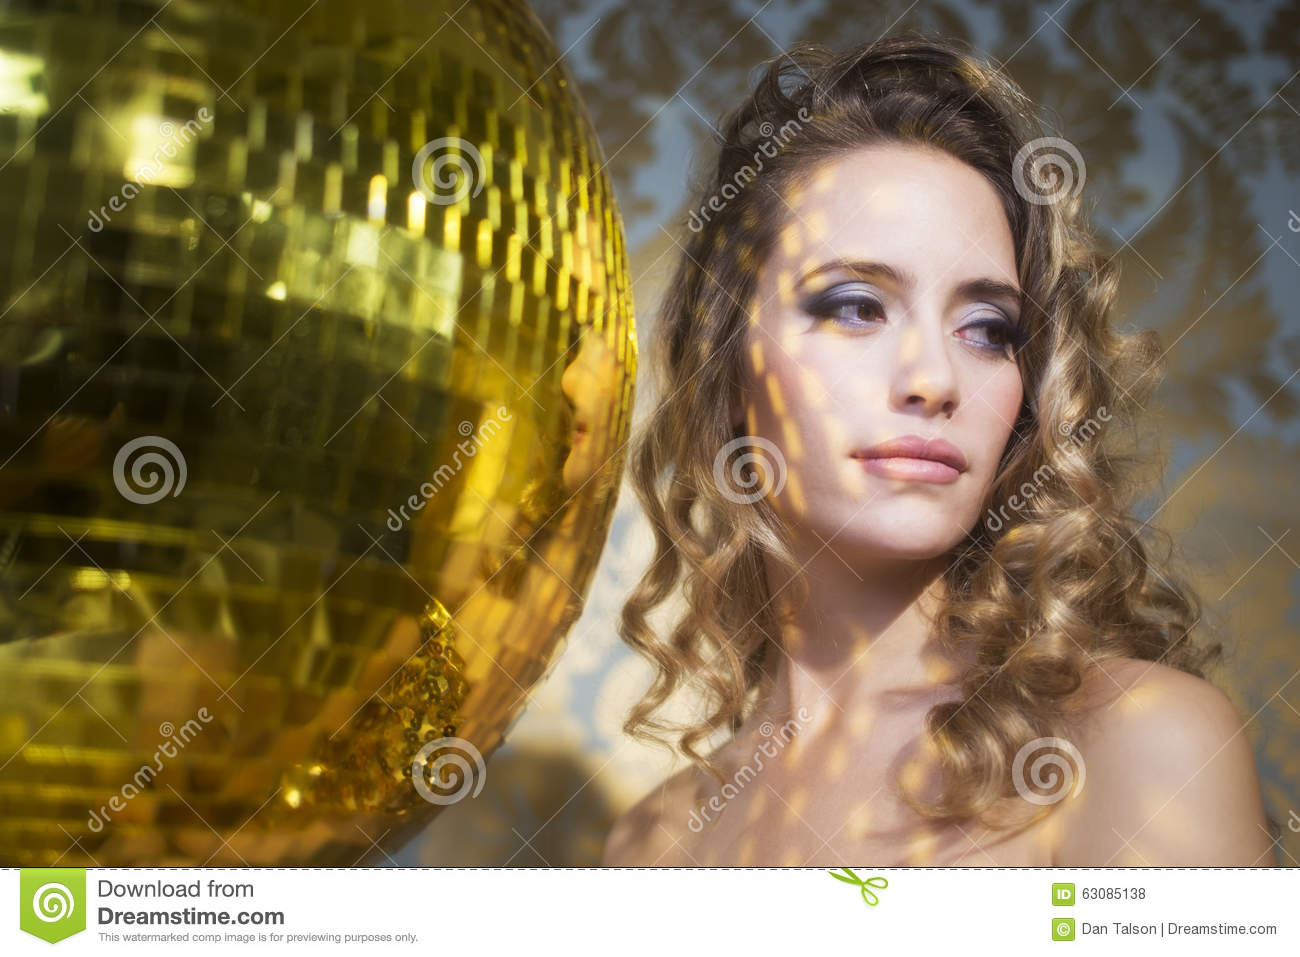 Download Femme Sexy Renversante De Tête De Discoball Photo stock - Image du cabaret, mignon: 63085138